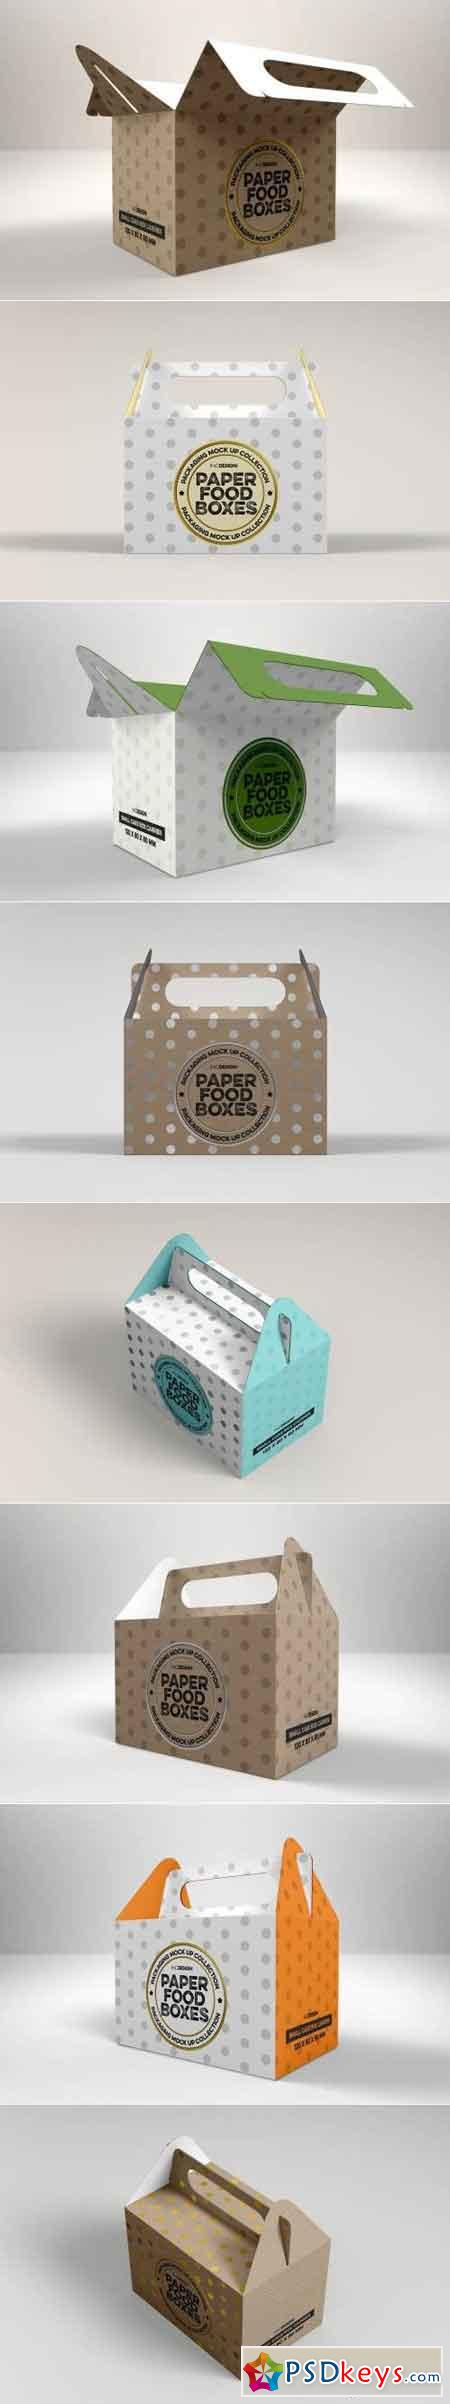 Small Box Carrier Packaging Mockup